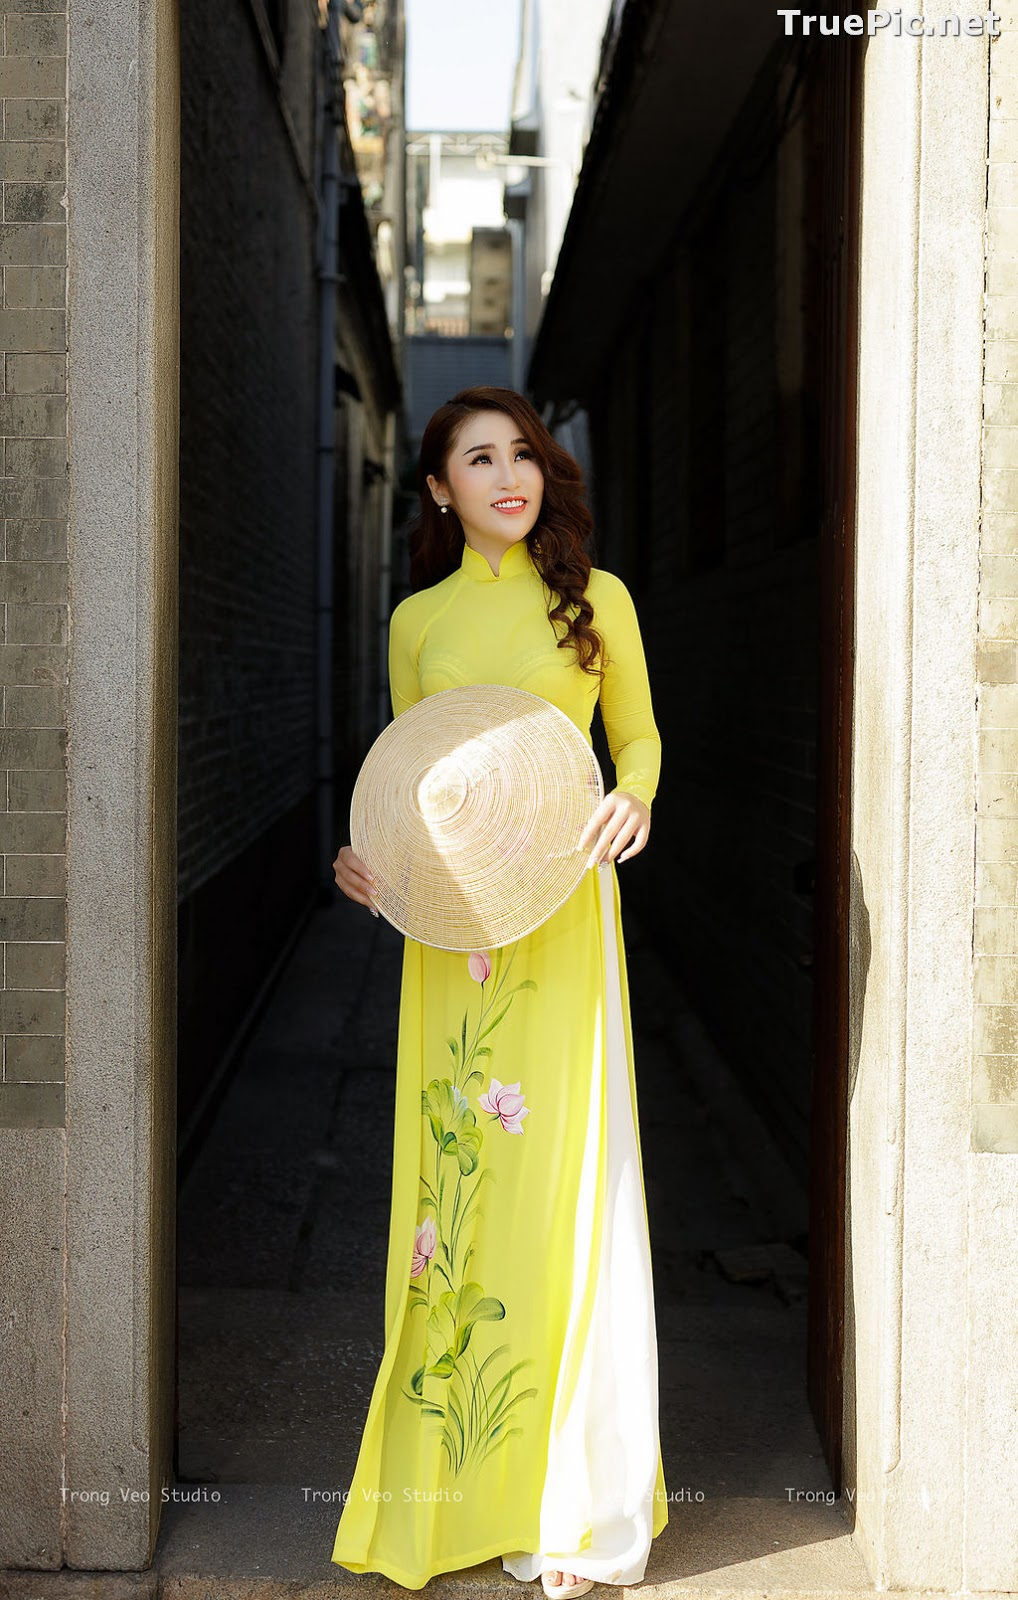 Image The Beauty of Vietnamese Girls with Traditional Dress (Ao Dai) #4 - TruePic.net - Picture-7